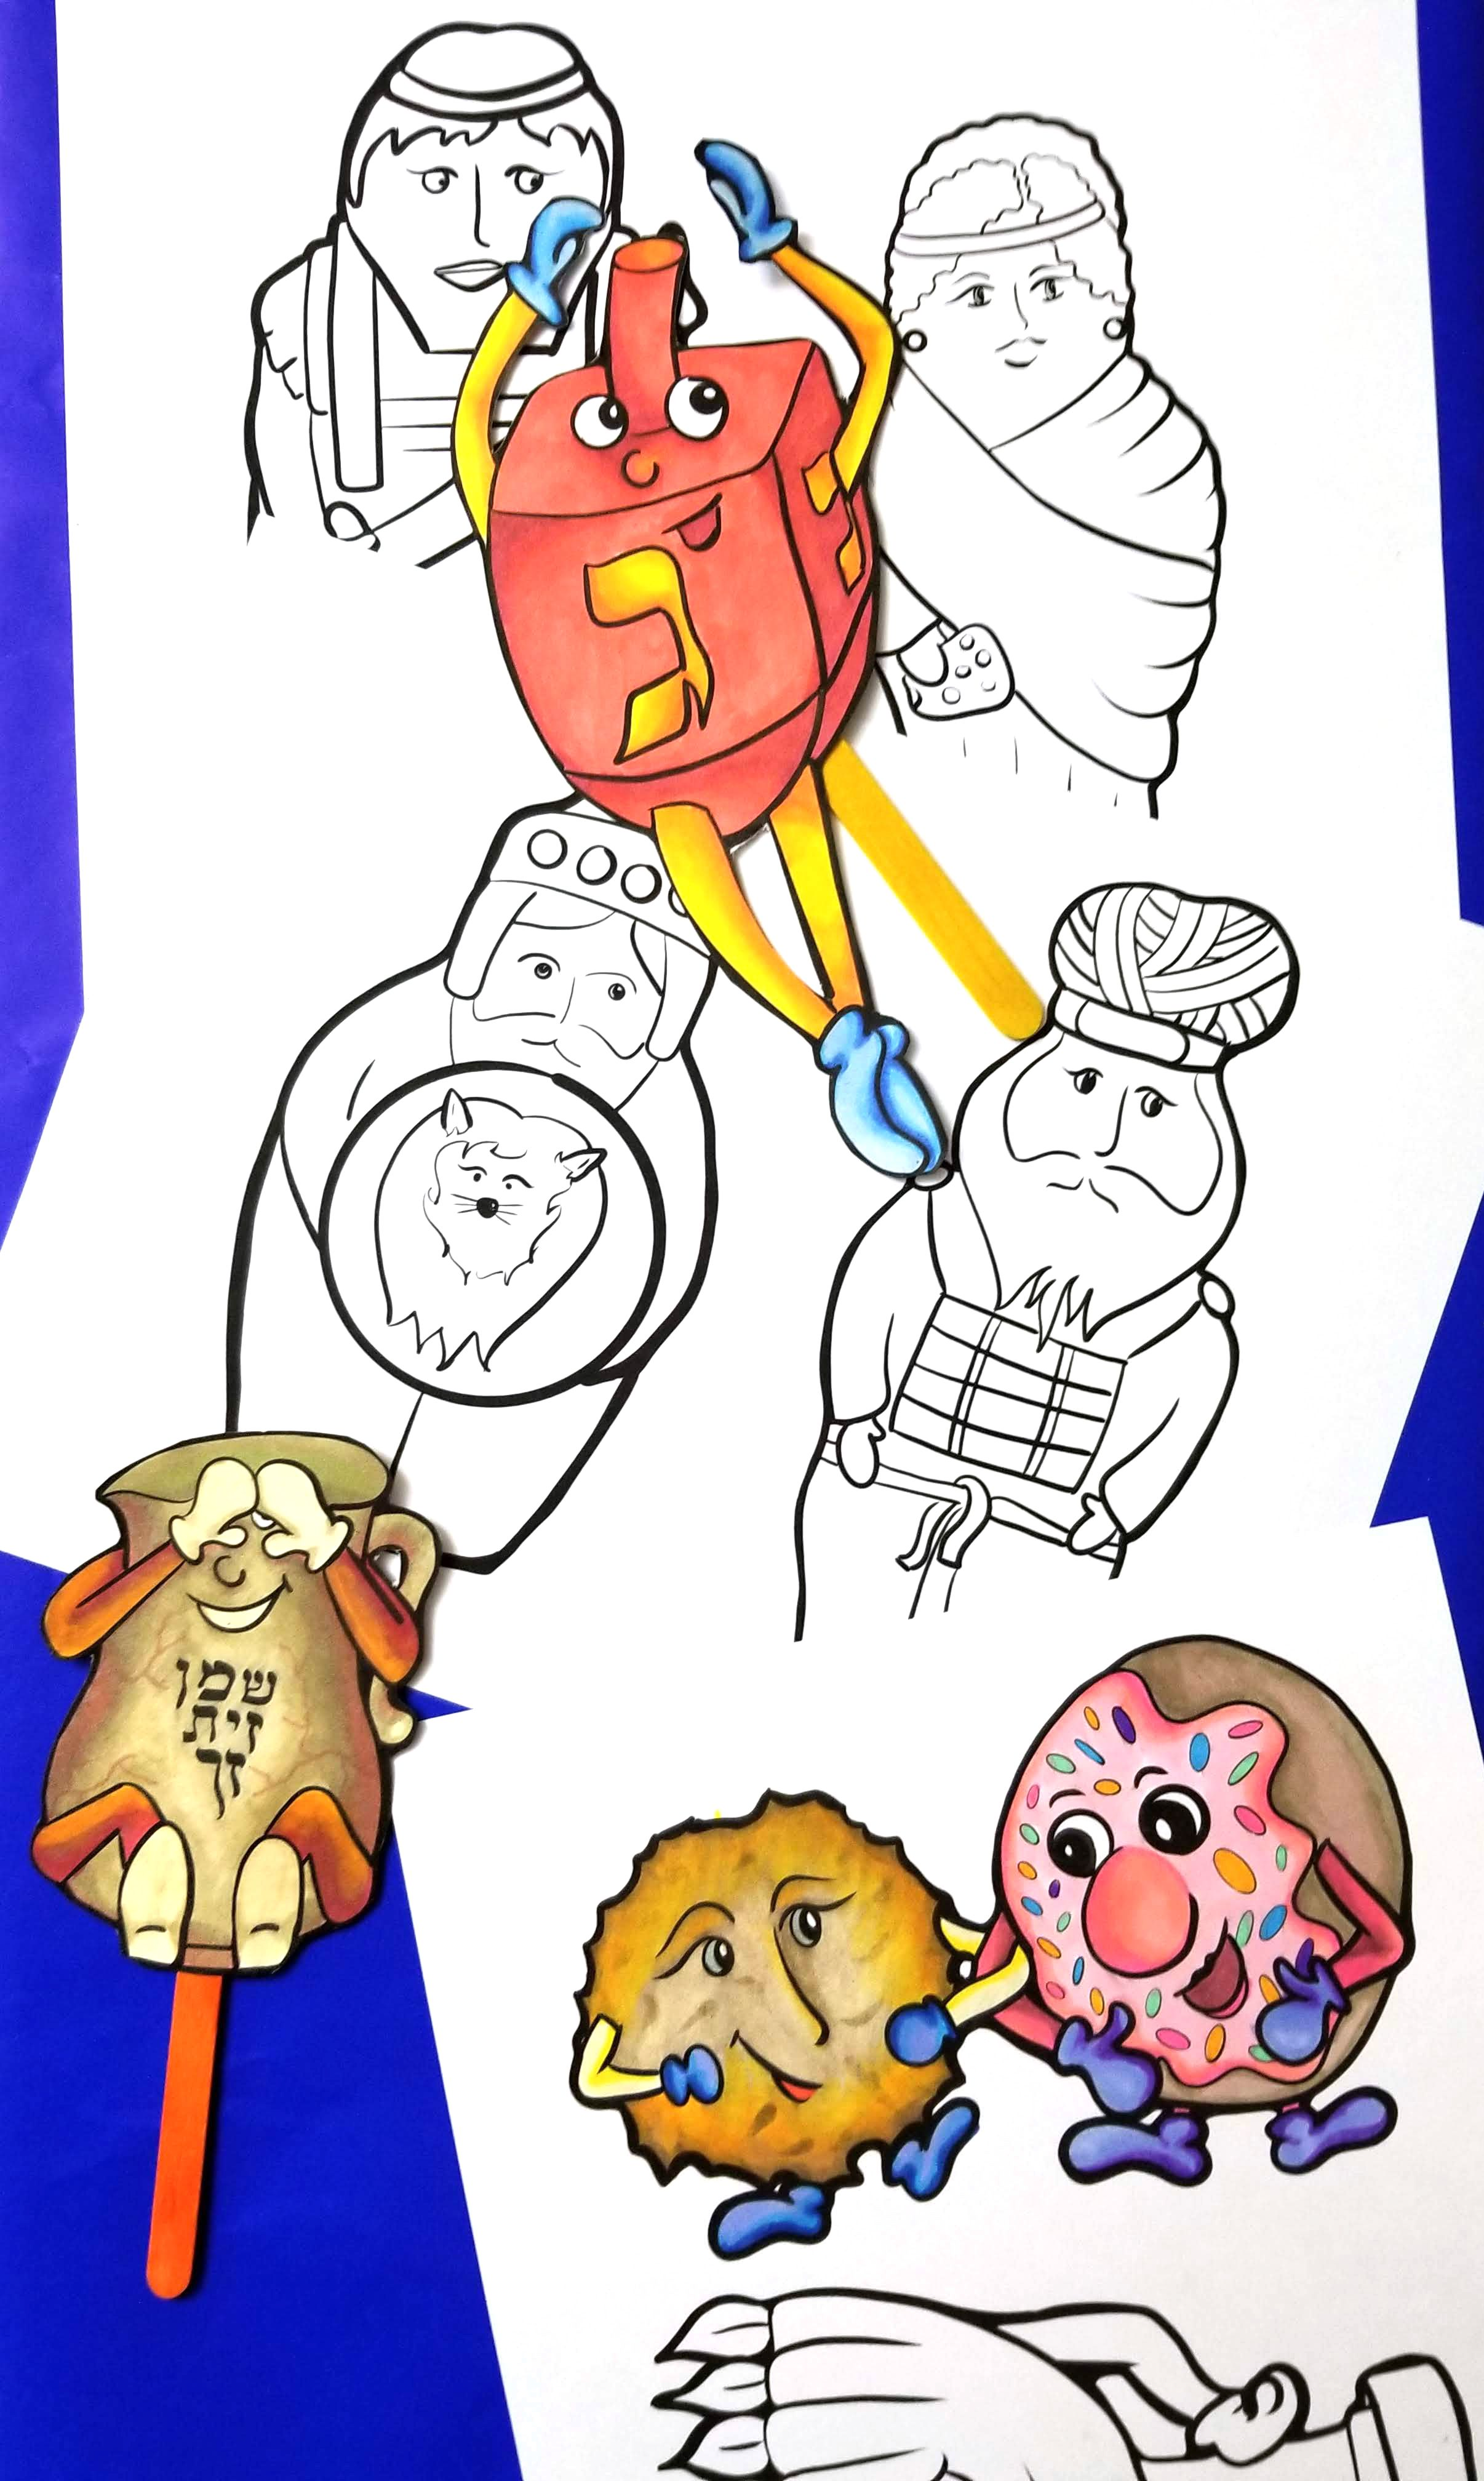 Hanukkah Puppets Printable Pdf Color In Coloring Pages Etsy Hanukkah Arts And Crafts For Kids Puppets [ 4032 x 2412 Pixel ]